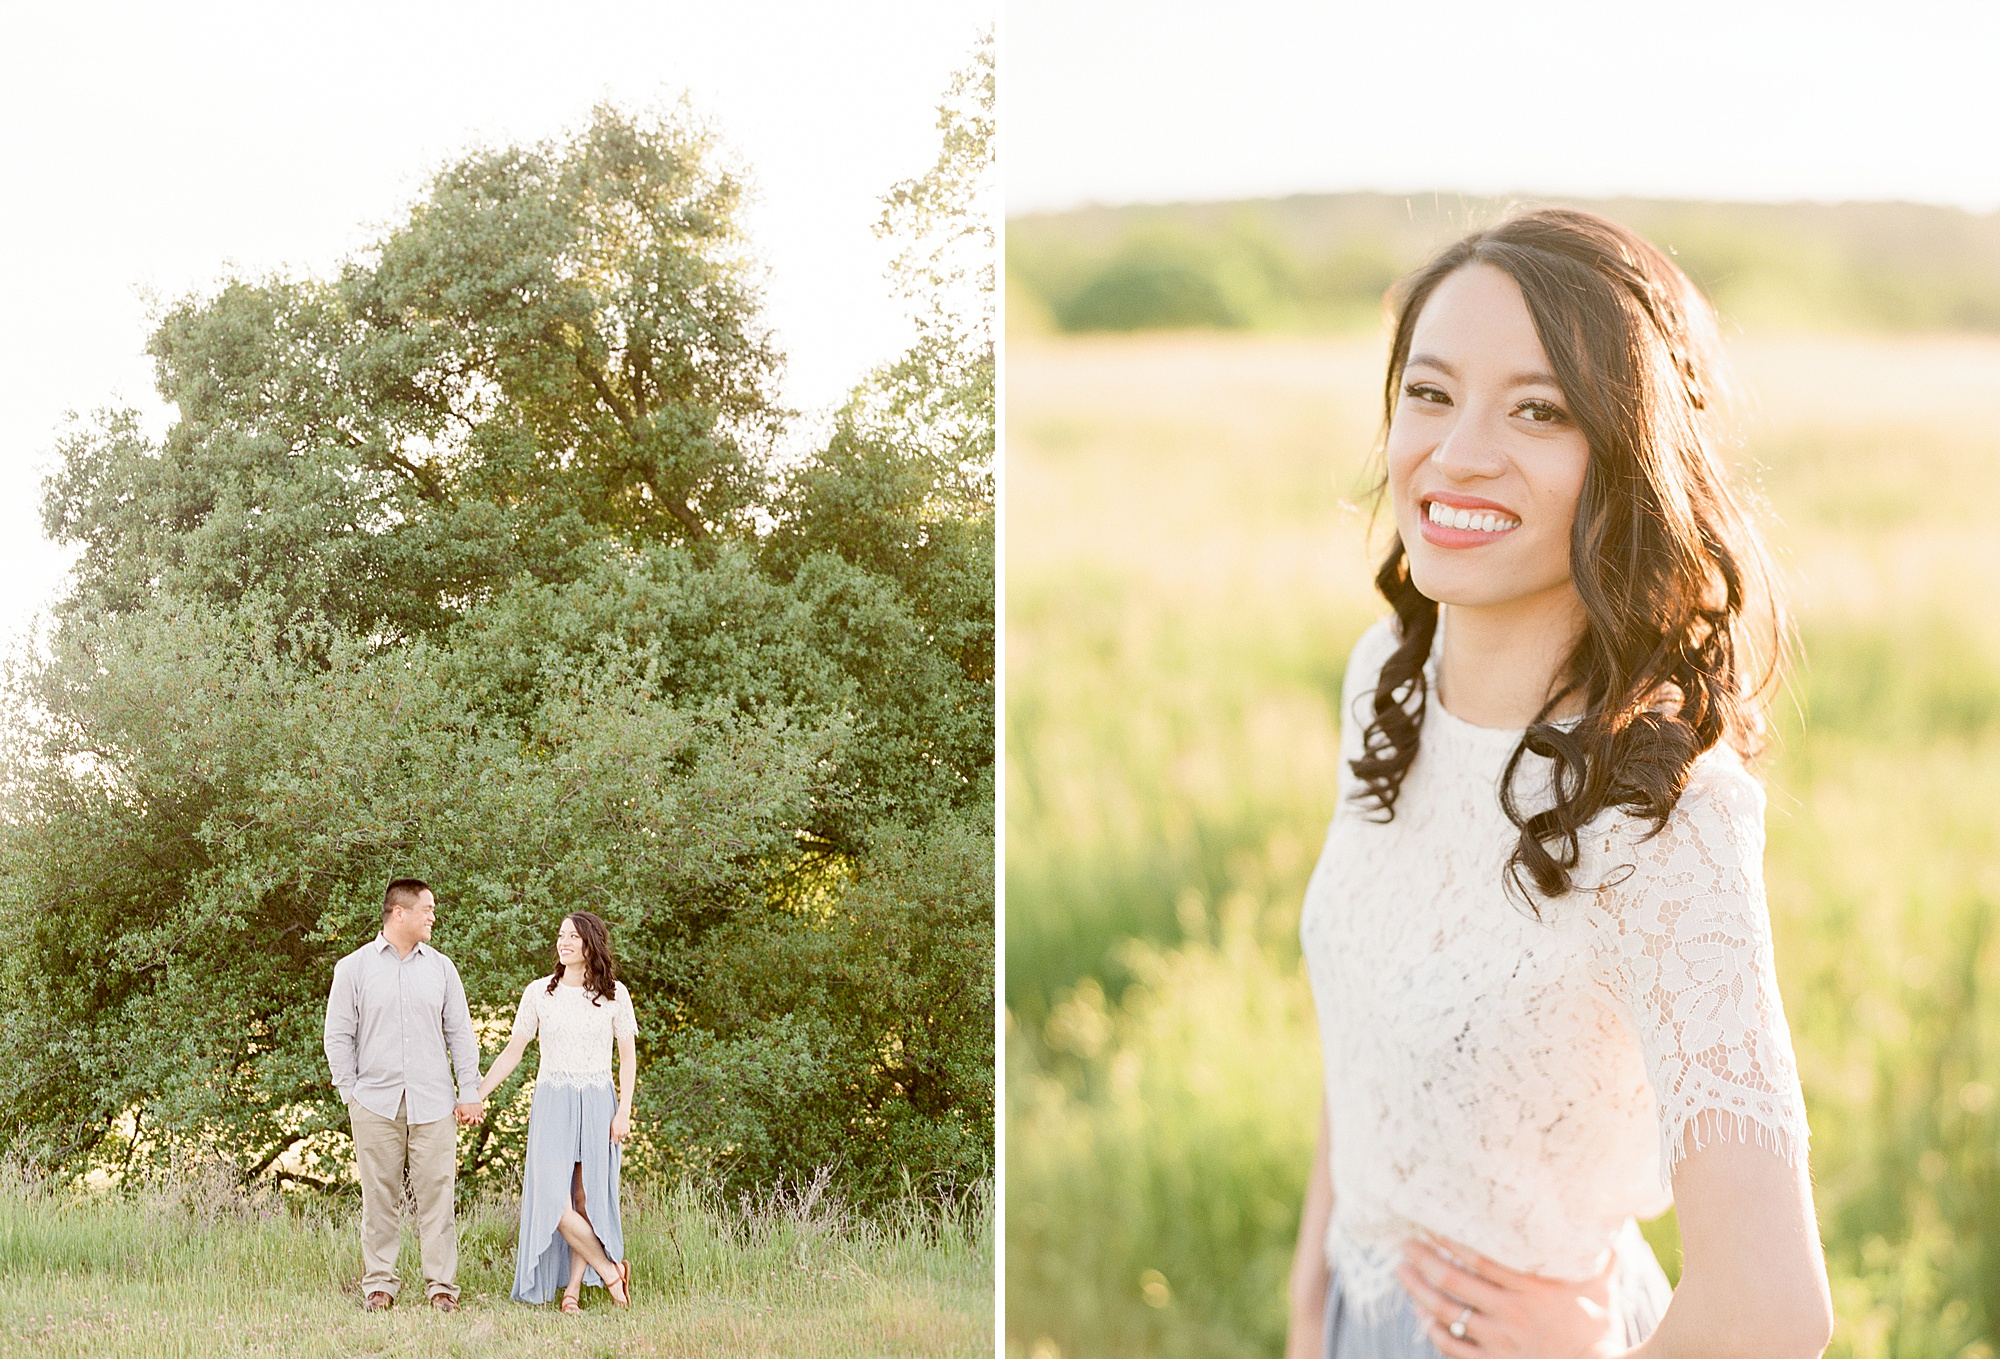 El Dorado Hills Engagement Session - Wendy and Danny - Ashley Baumgartner - Sacramento Wedding Photographer and Sacramento Wedding Photography - Bay Area Wedding Photographer_0016.jpg